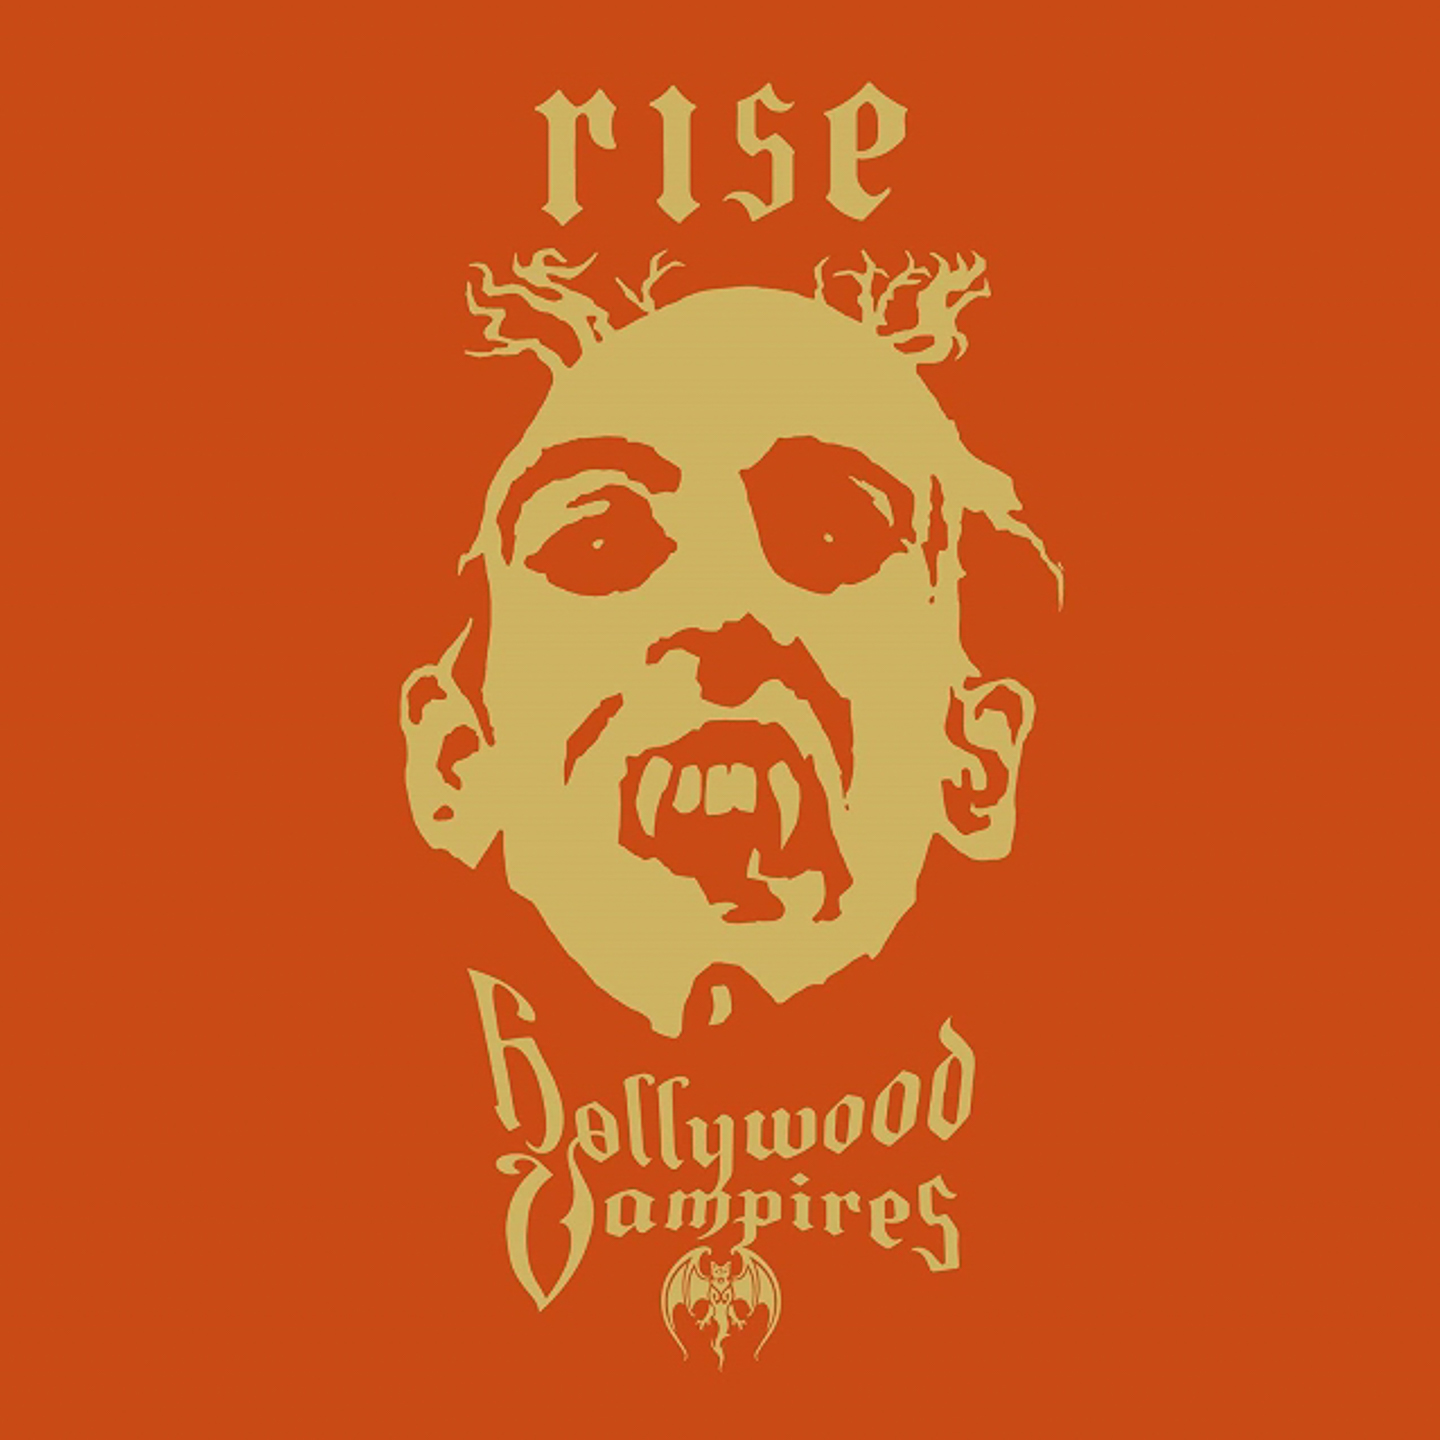 Rise, Hollywood Vampires New album 2019